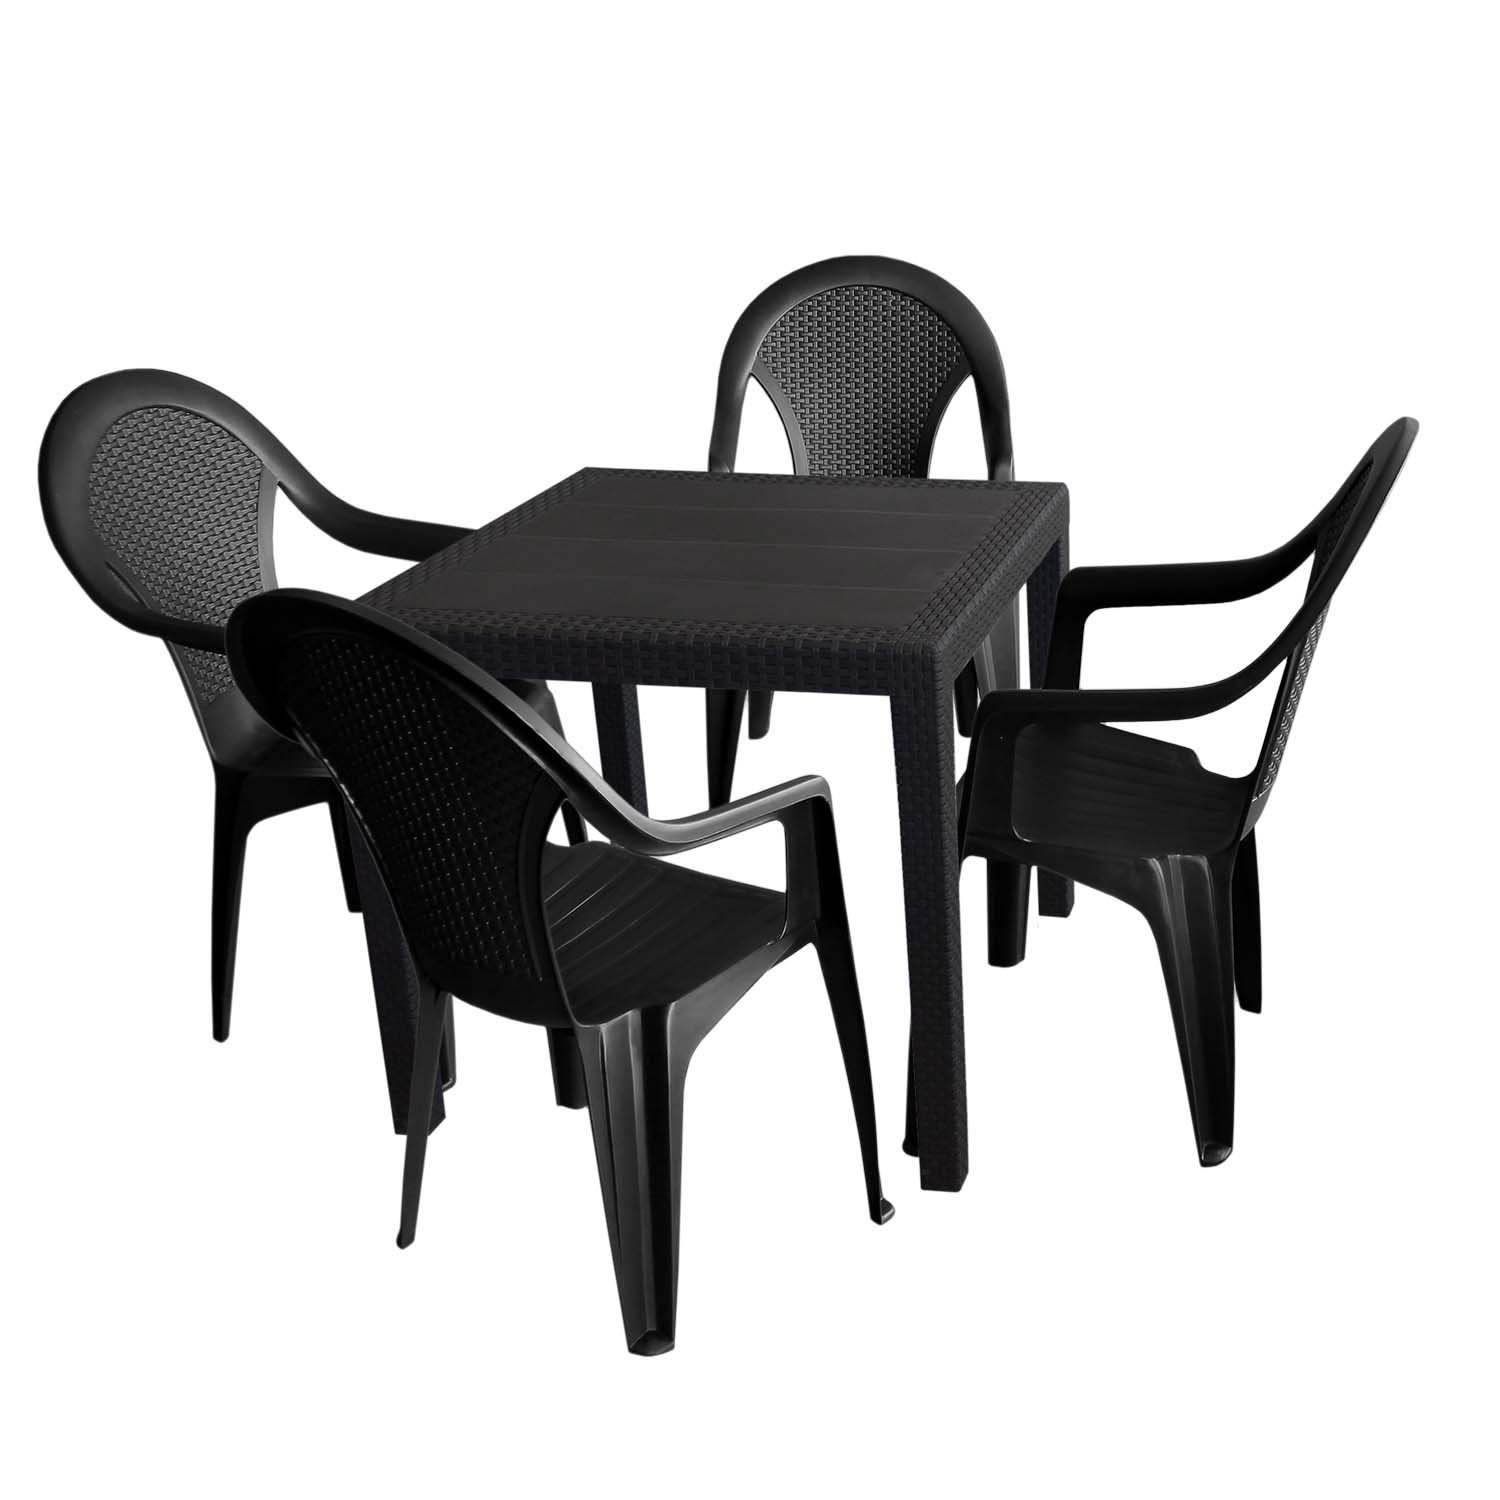 5tlg gartengarnitur kunststoff gartentisch 79x79cm rattan. Black Bedroom Furniture Sets. Home Design Ideas